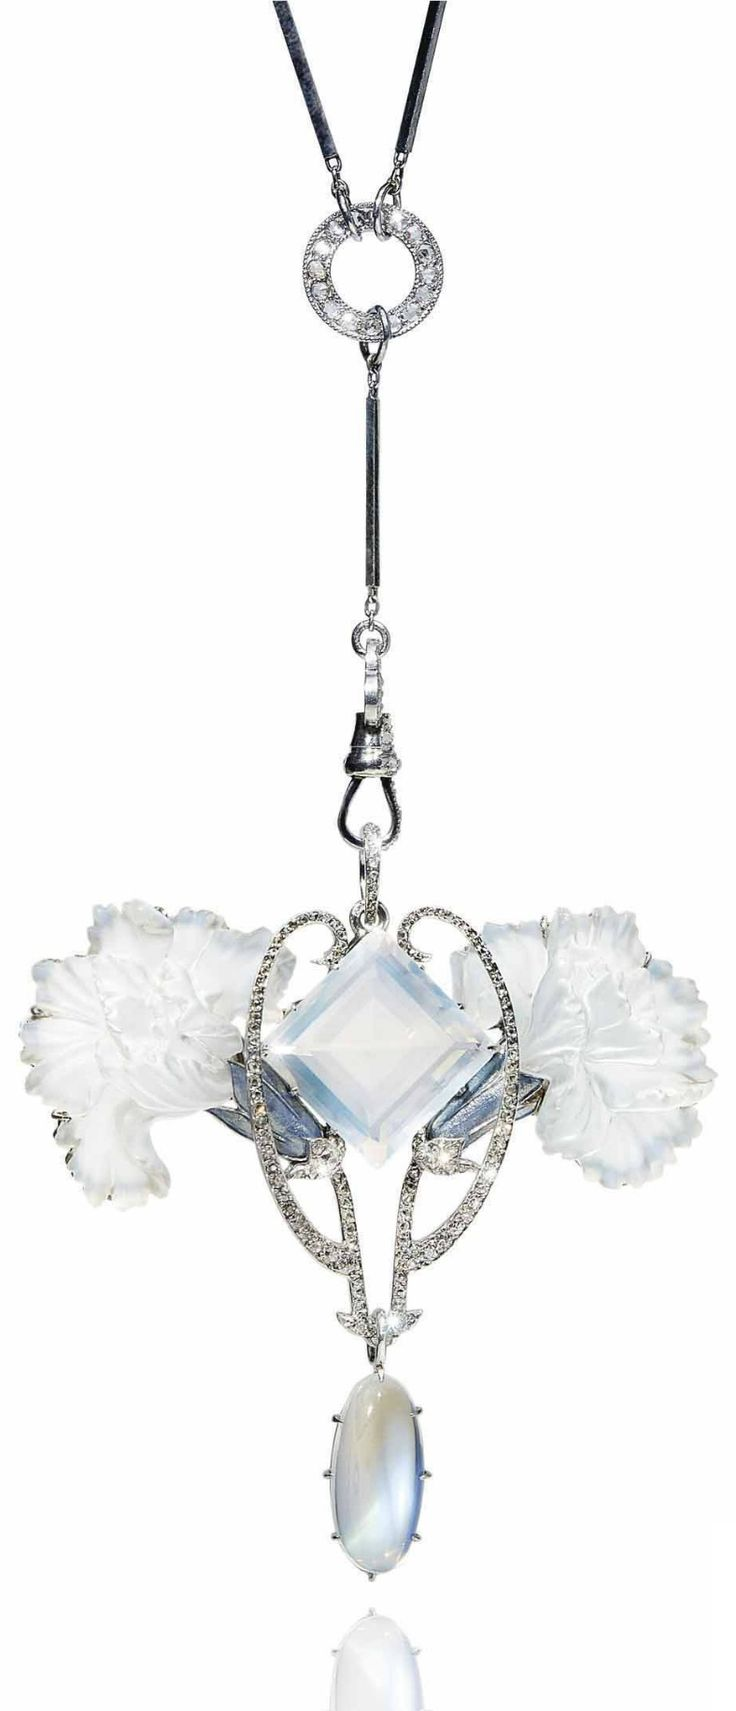 RENÉ LALIQUE - AN ART NOUVEAU MOONSTONE, DIAMOND, ENAMEL AND GLASS PENDANT, 1904-05. Centring a square-cut moonstone, between two opalescent glass carnations with enamel and diamond stems, suspending an oval cabochon moonstone, the chain with diamond accents, with French assay marks for platinum, pendant signed Lalique, chain signed G. Fouquet.